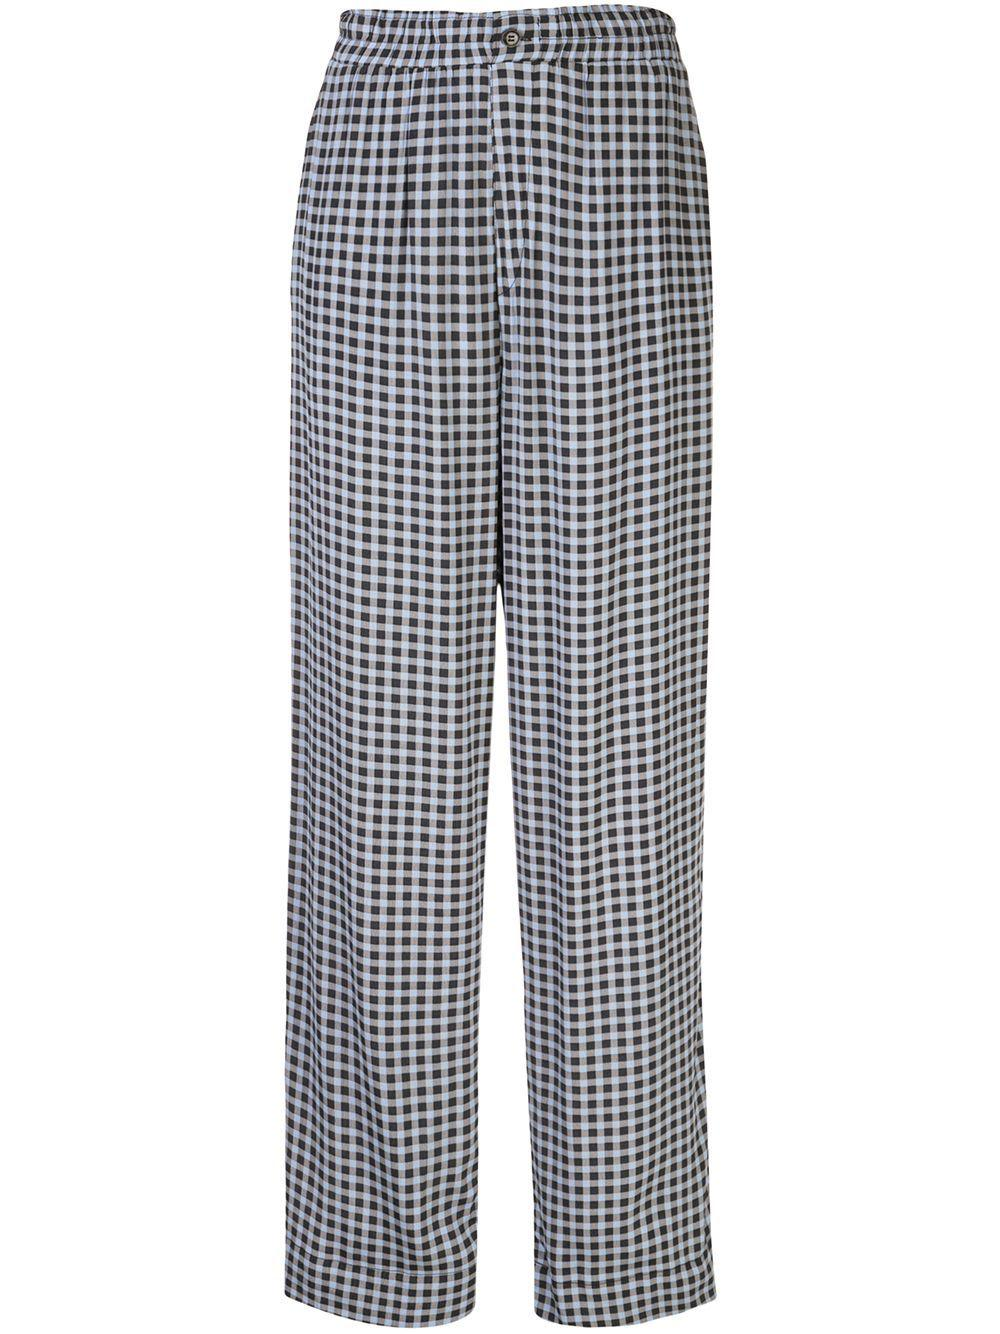 Printed Crepe Gingham Trouser